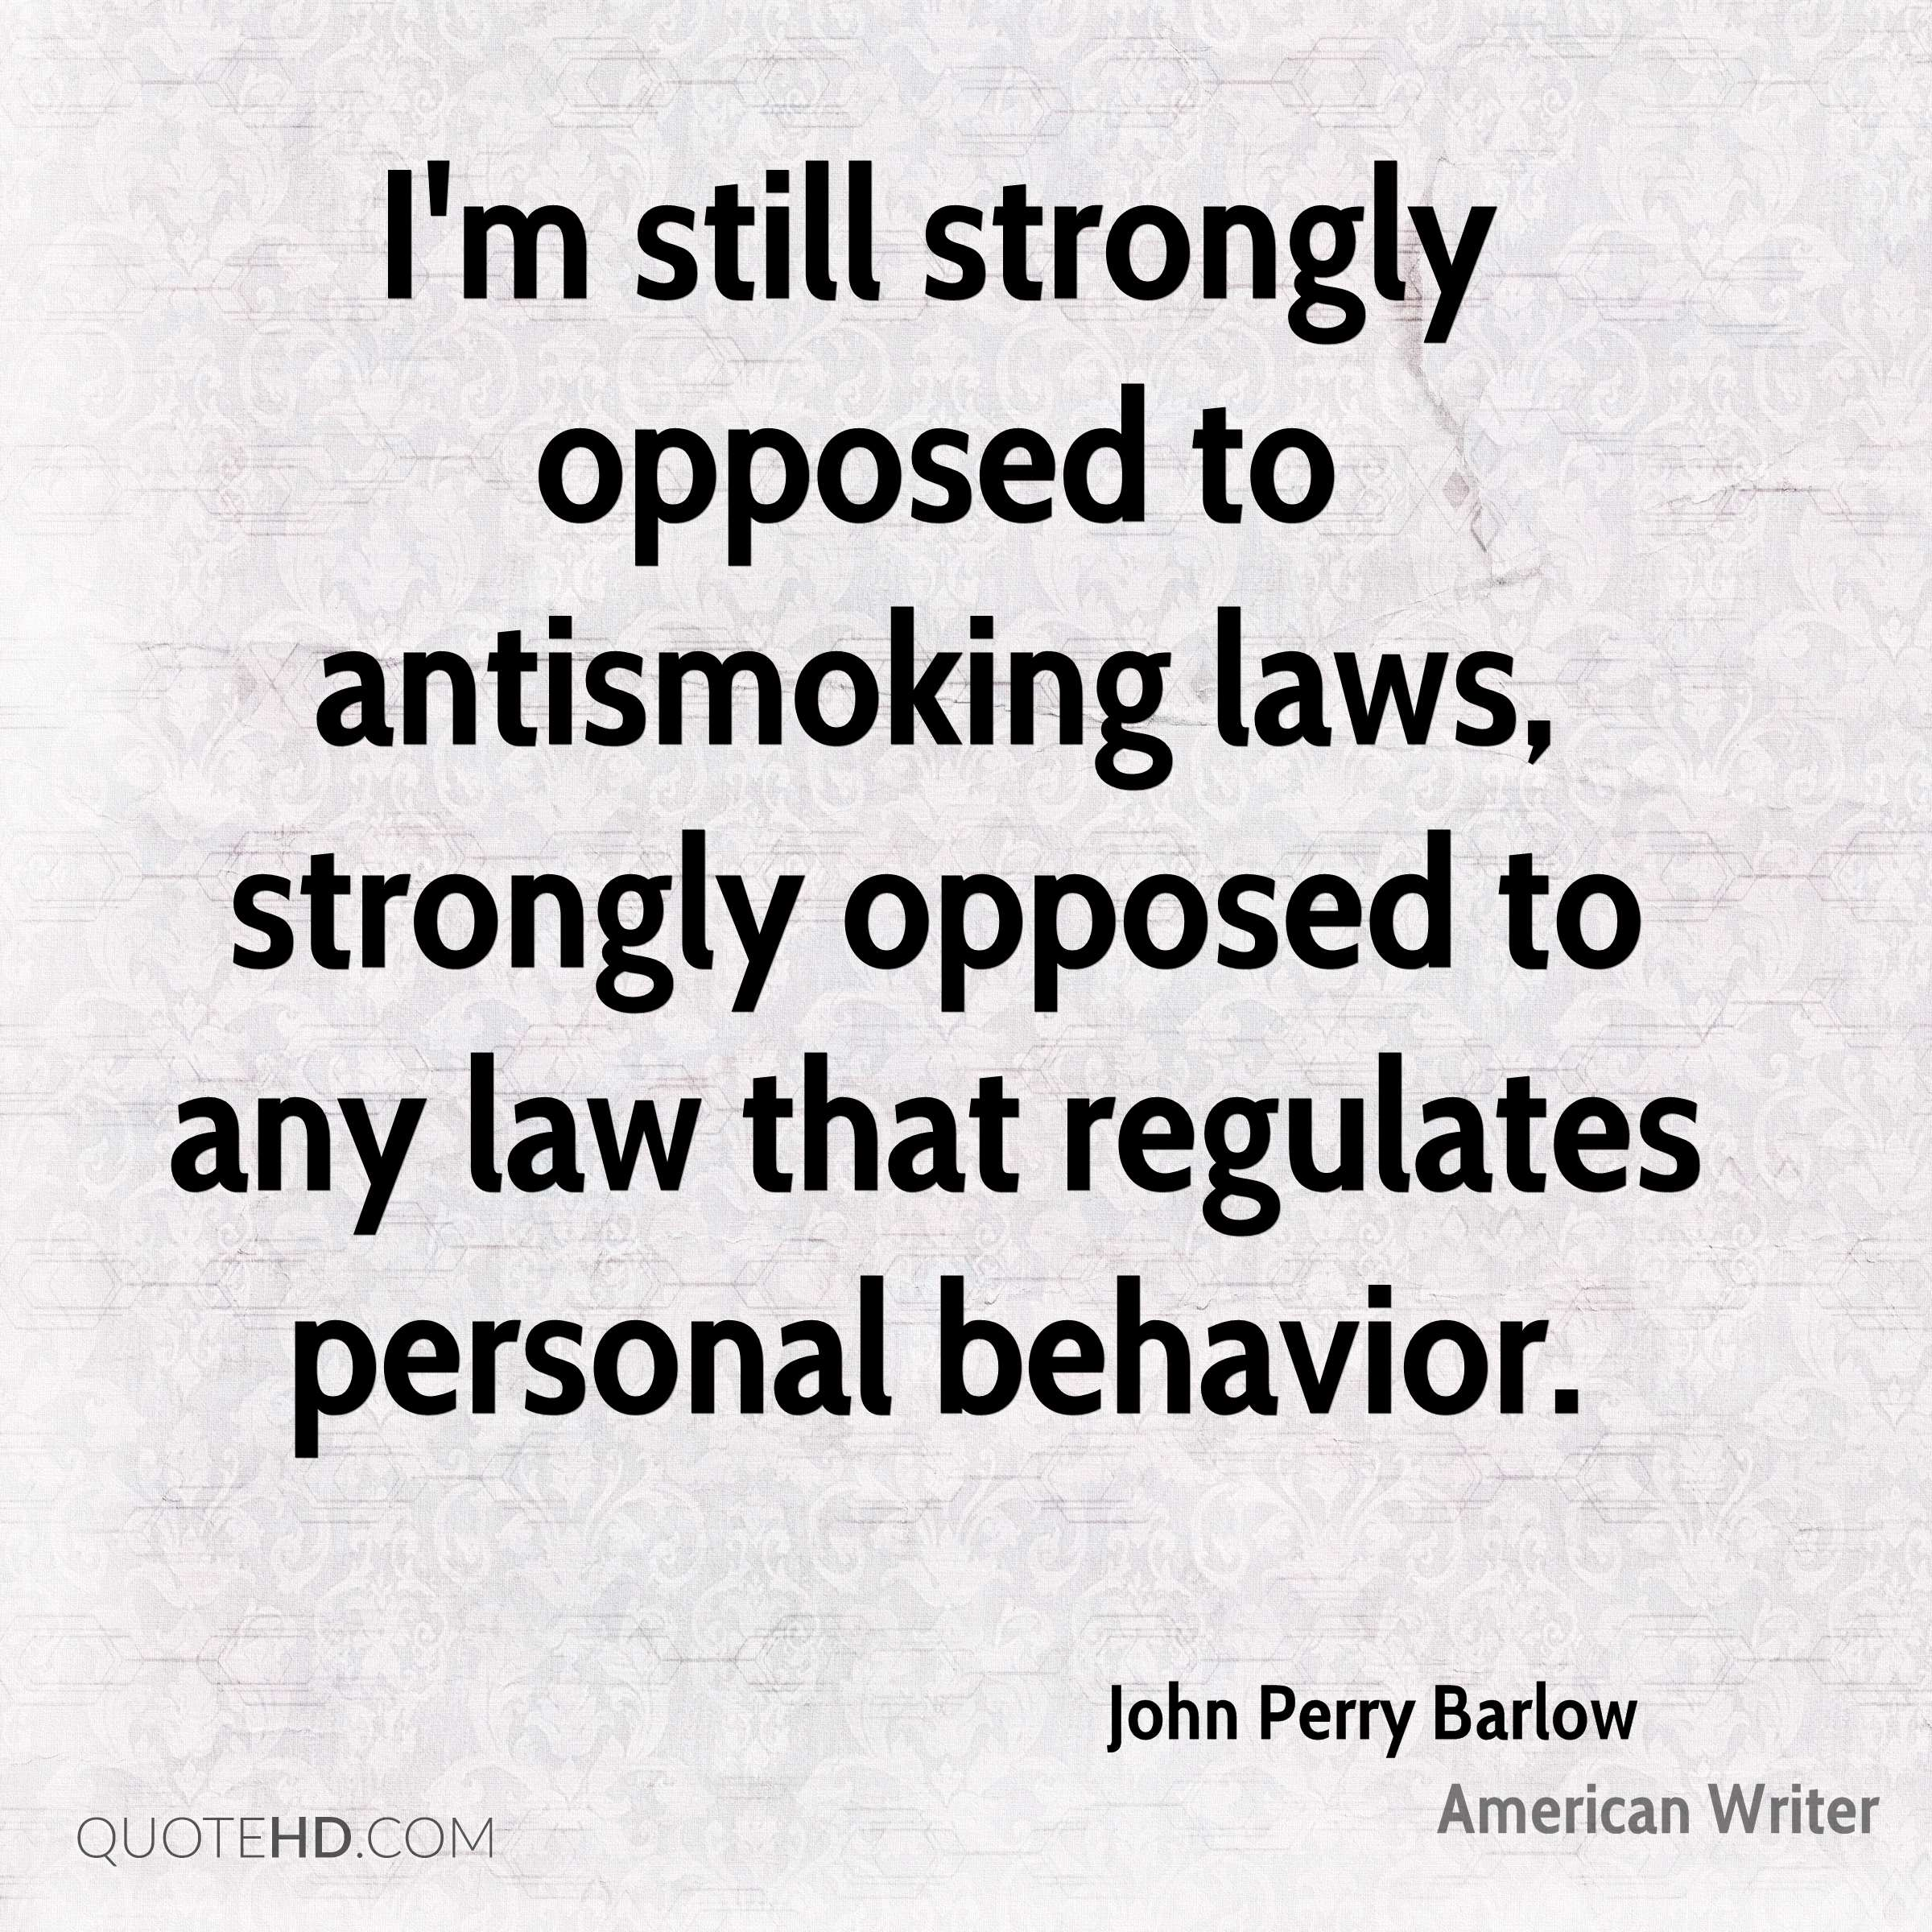 I'm still strongly opposed to antismoking laws, strongly opposed to any law that regulates personal behavior.